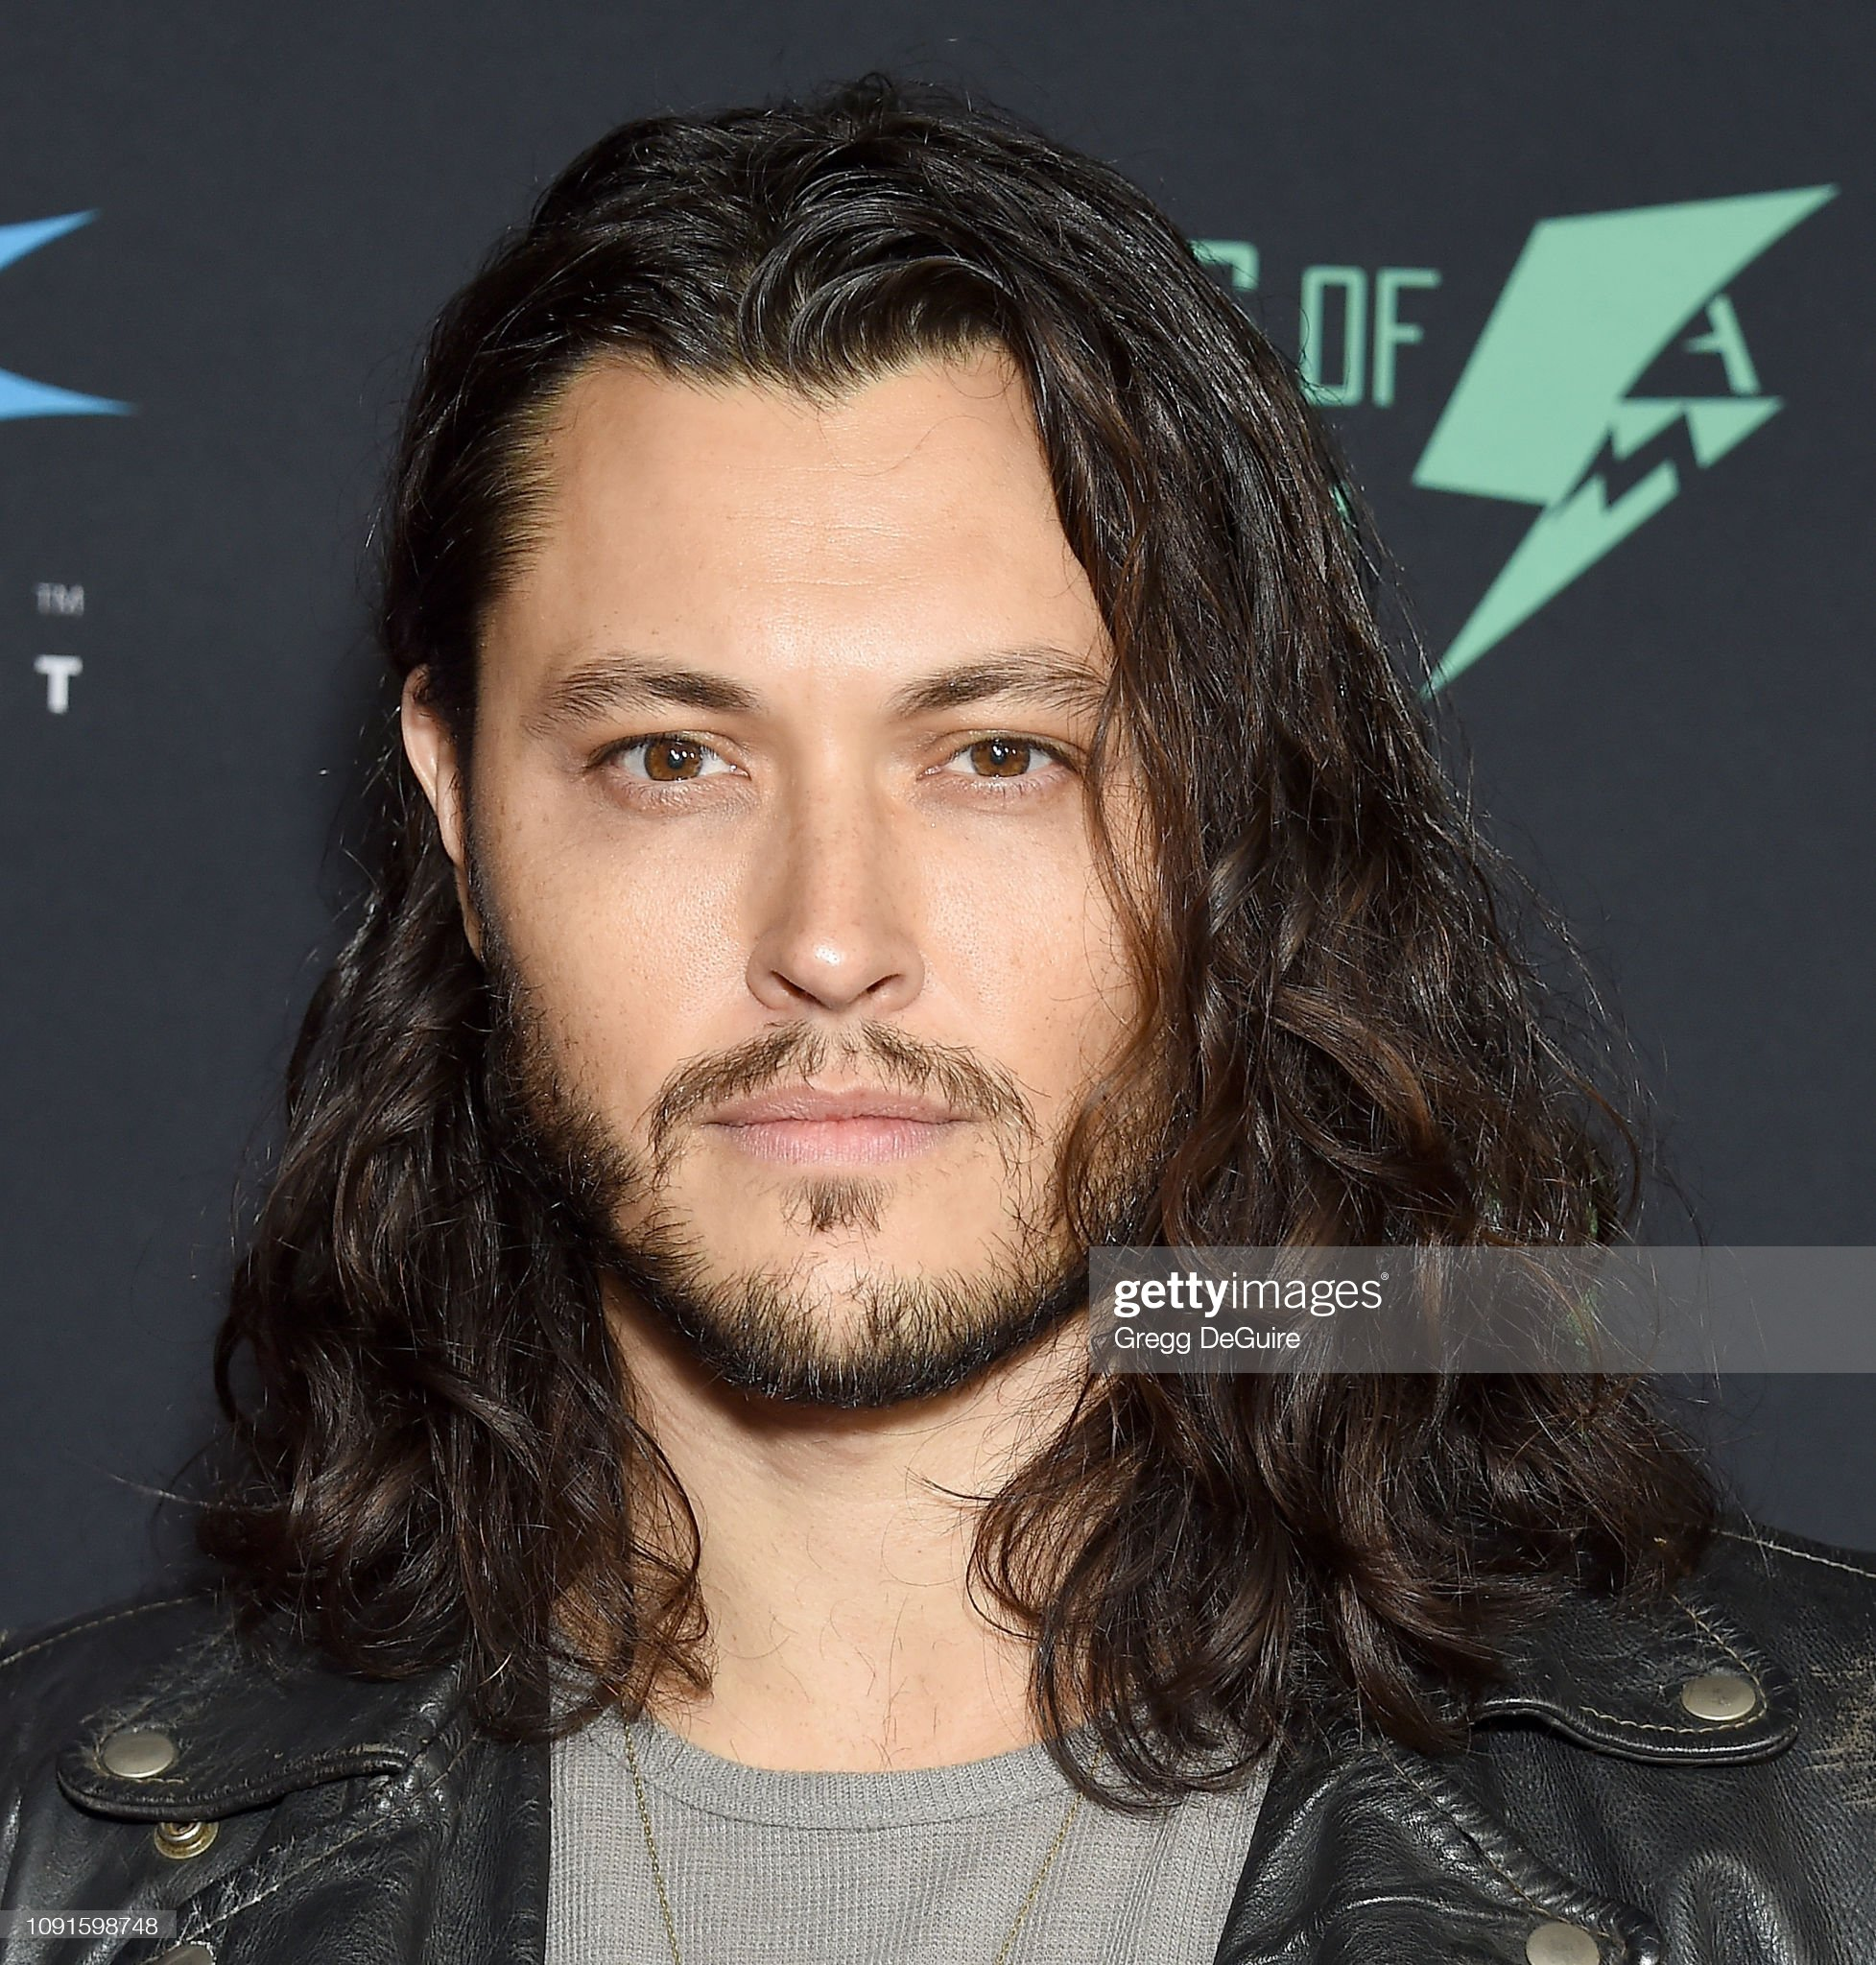 blair-redford-arrives-at-excelsior-a-celebration-of-the-amazing-and-picture-id1091598748